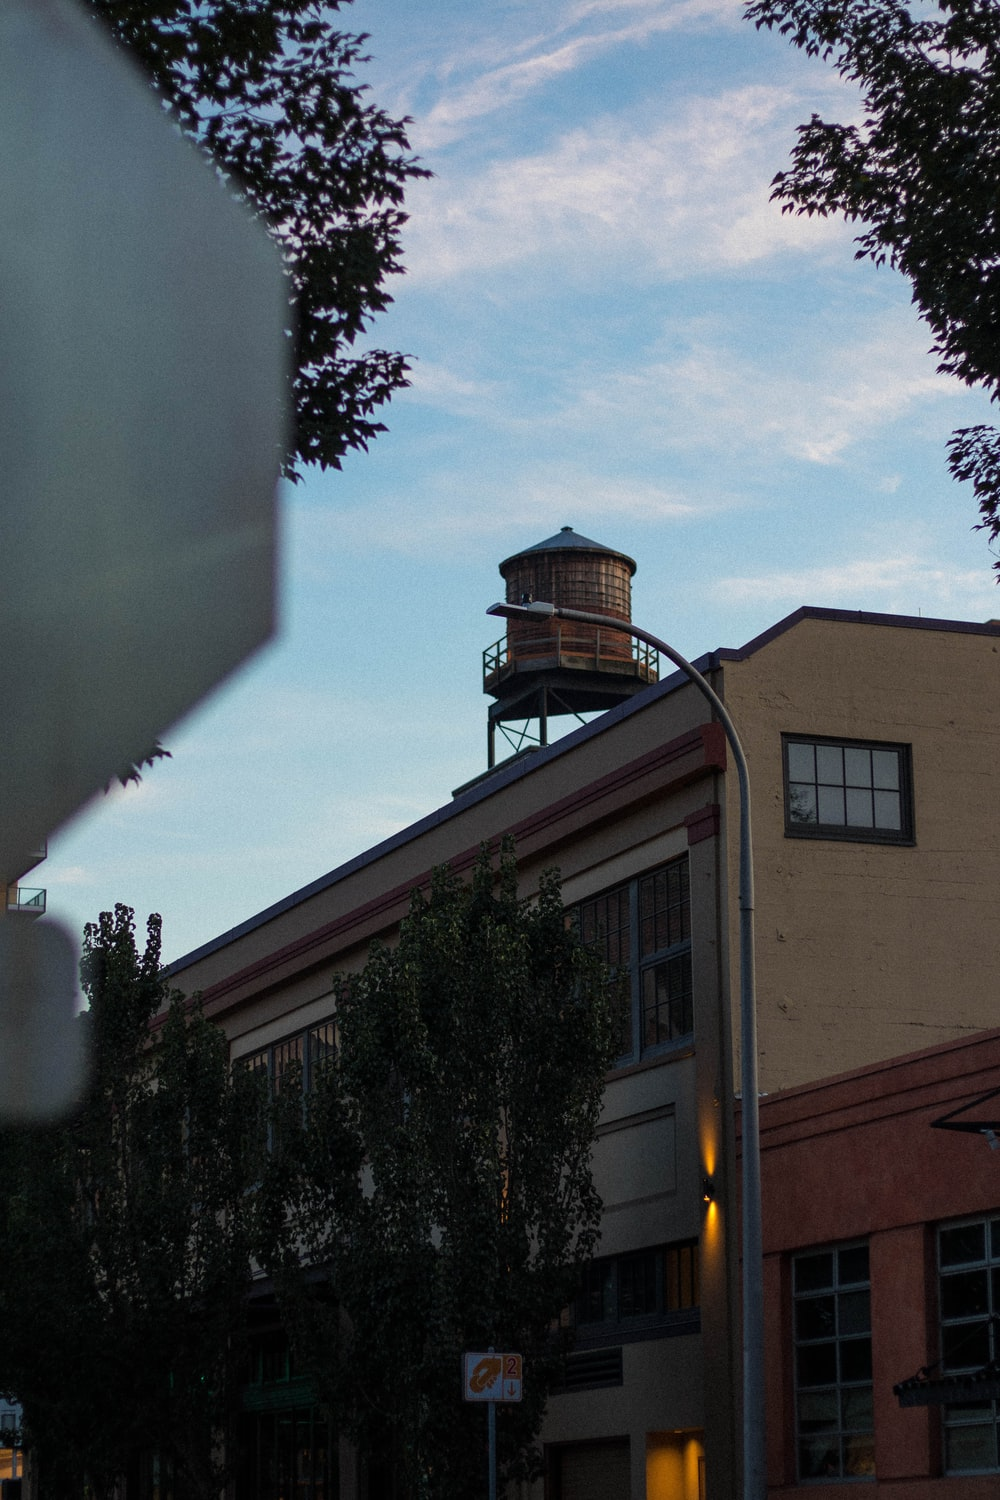 water storage tank on top of building during daytime